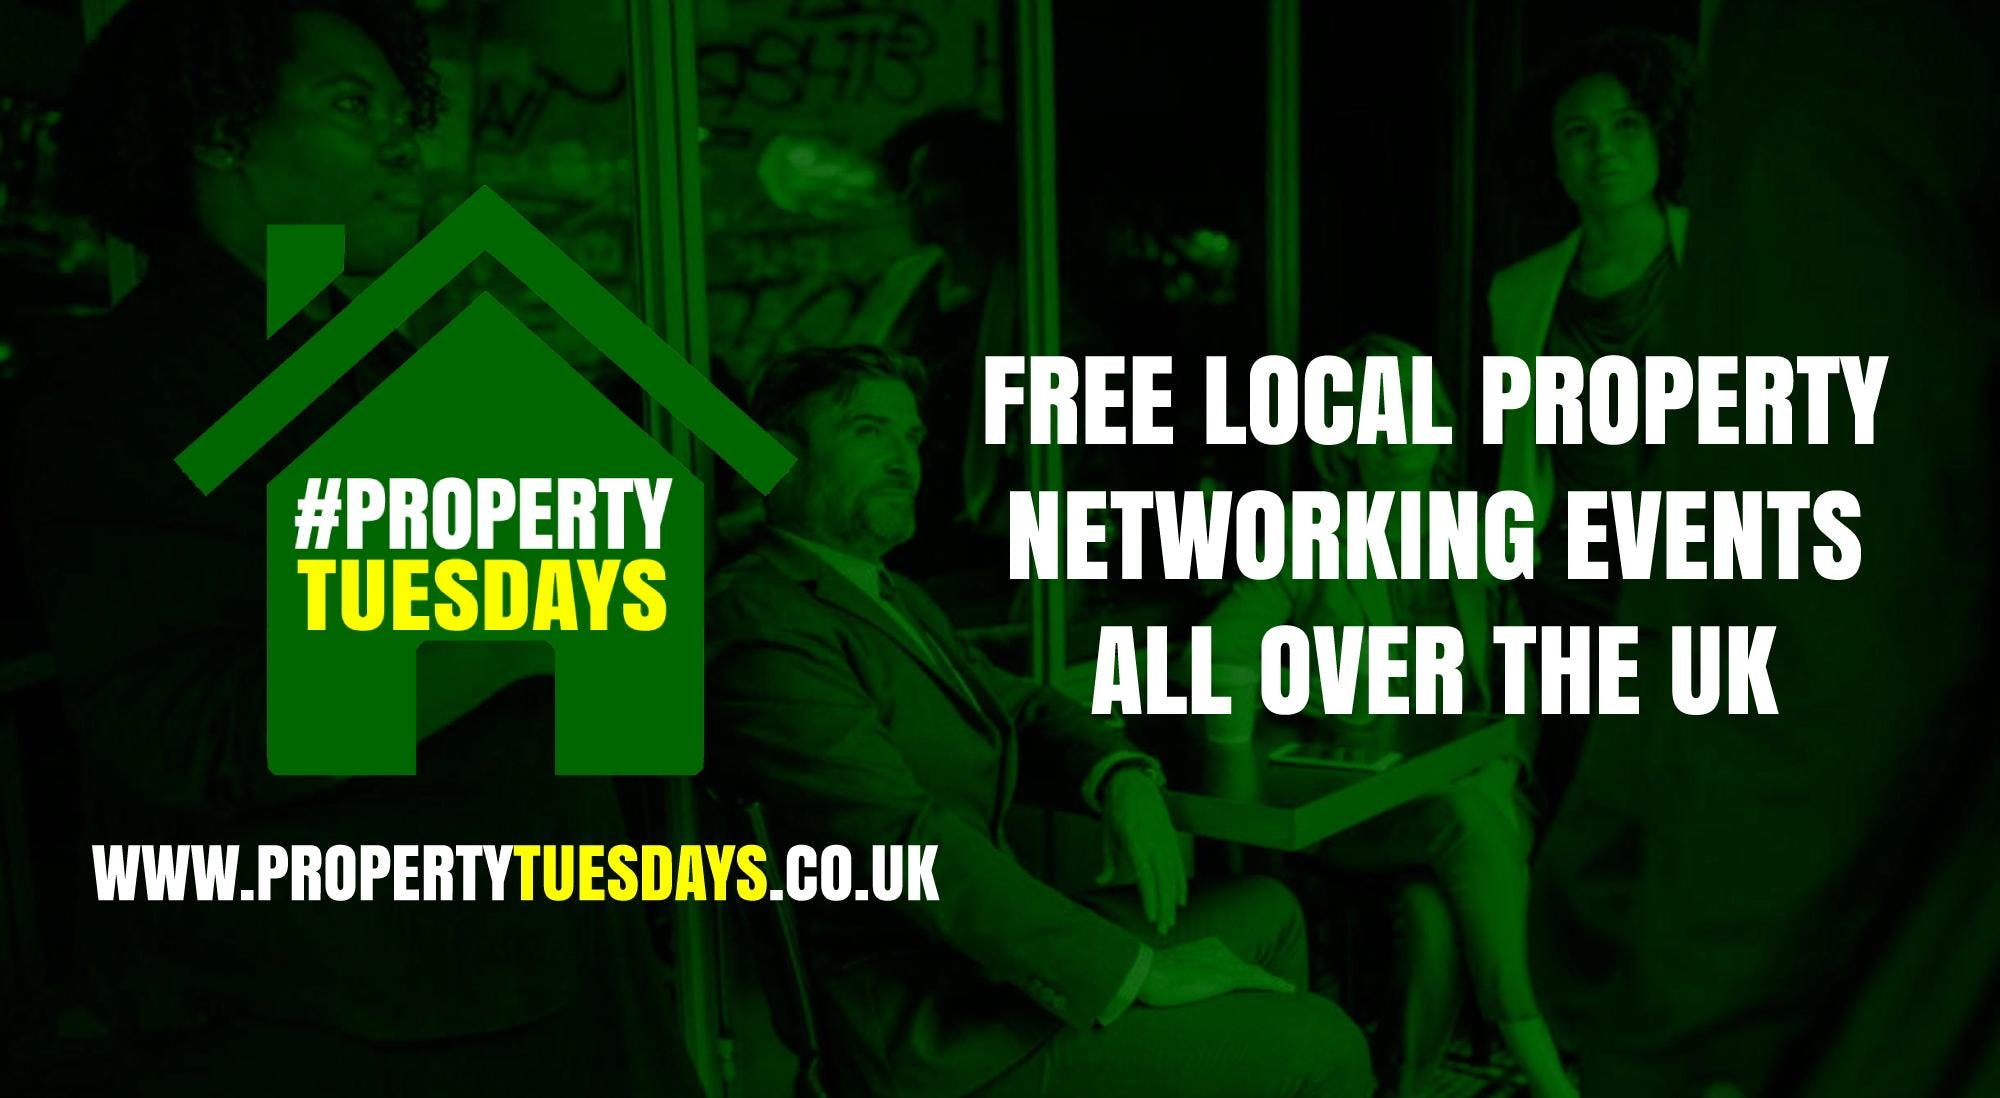 Property Tuesdays! Free property networking event in Manchester